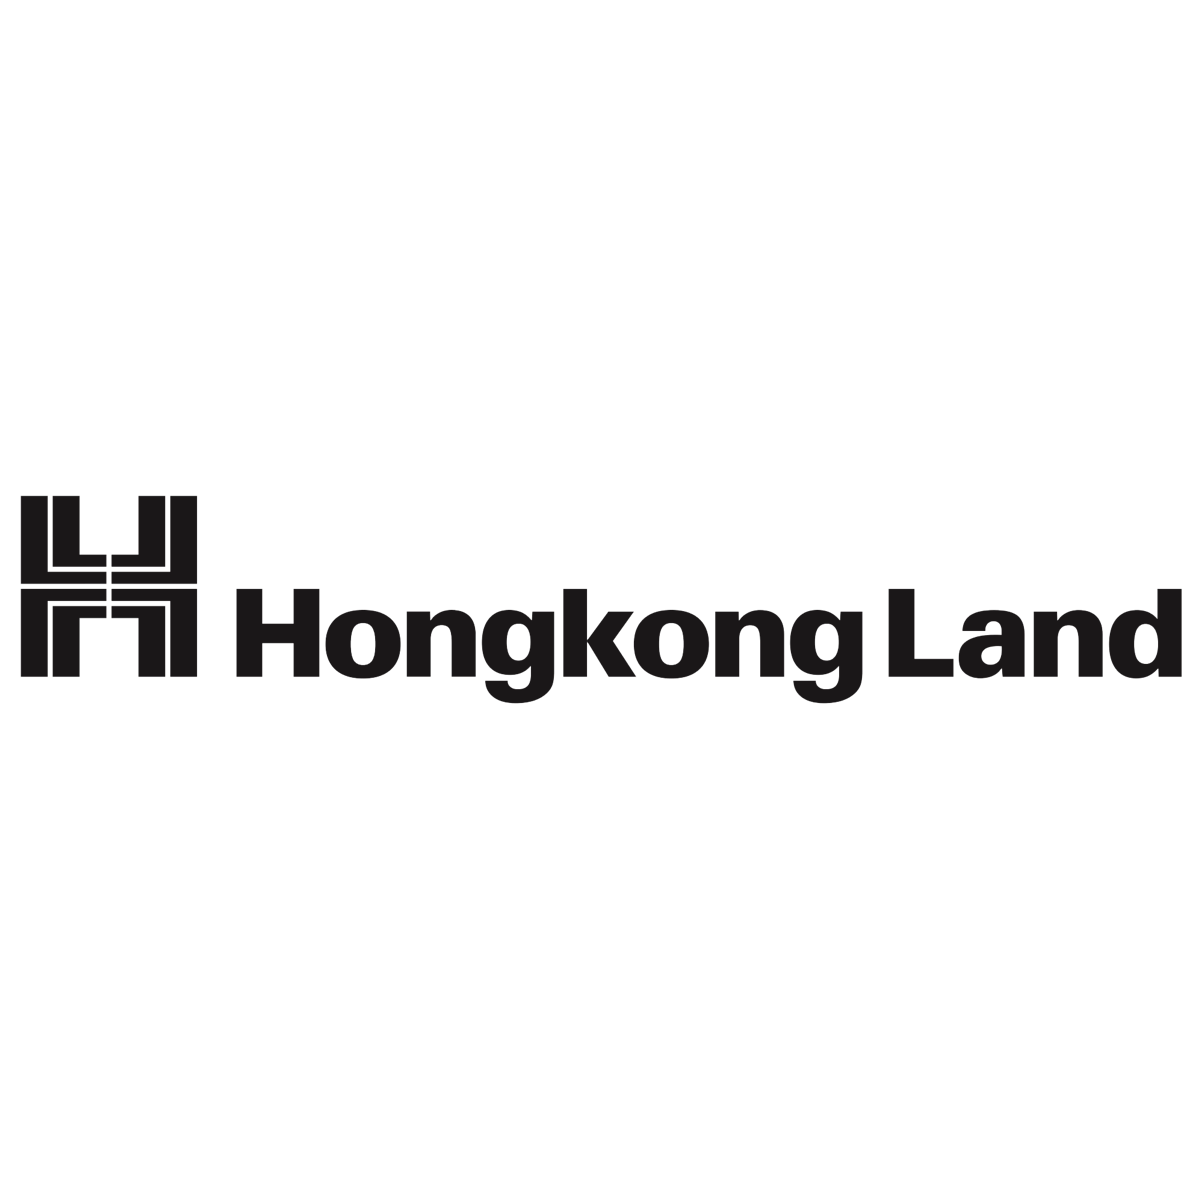 Hongkong Land - DBS Vickers 2017-03-06: Stepping up pace on regional residential investments